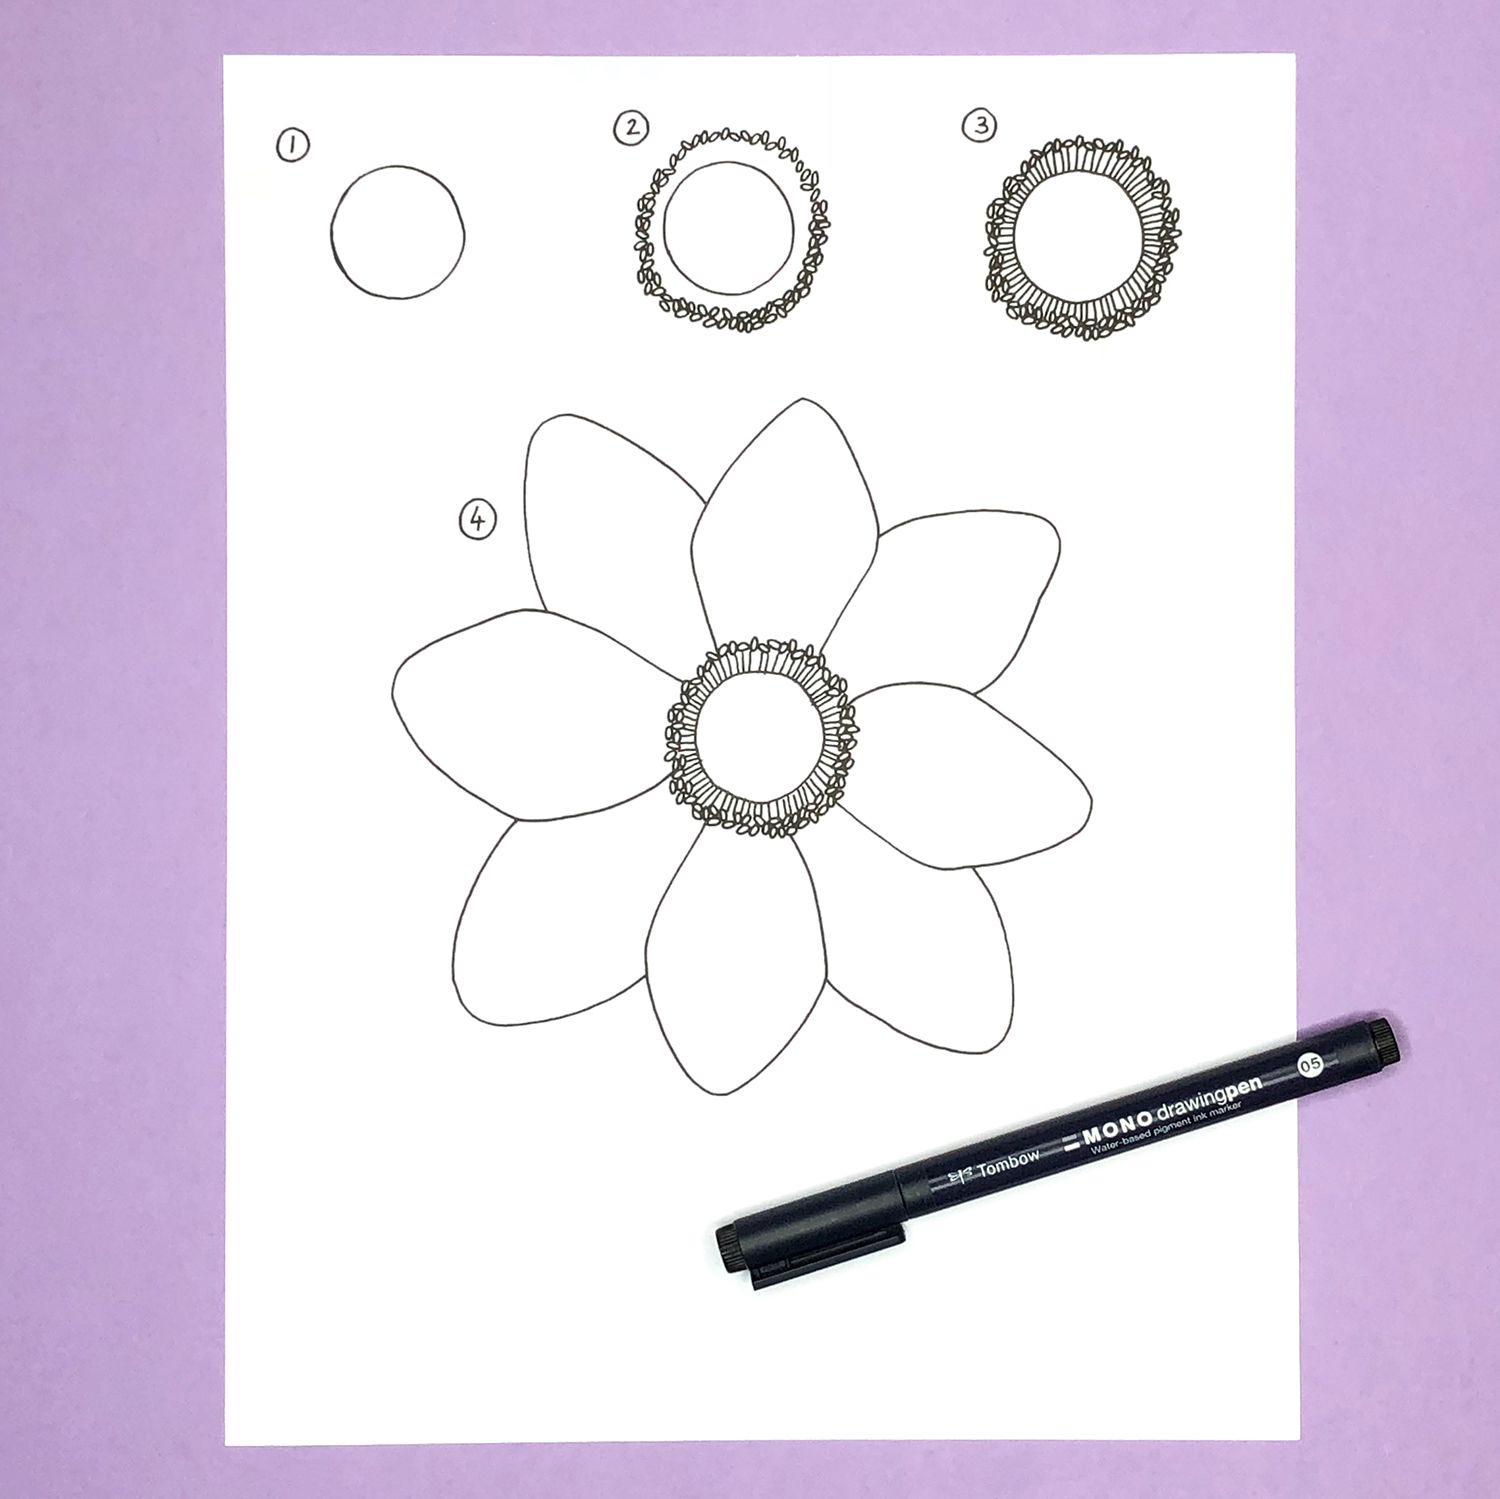 How To Draw An Anemone Flower Tombow Usa Blog Anemone Flower Flower Drawing Anemone